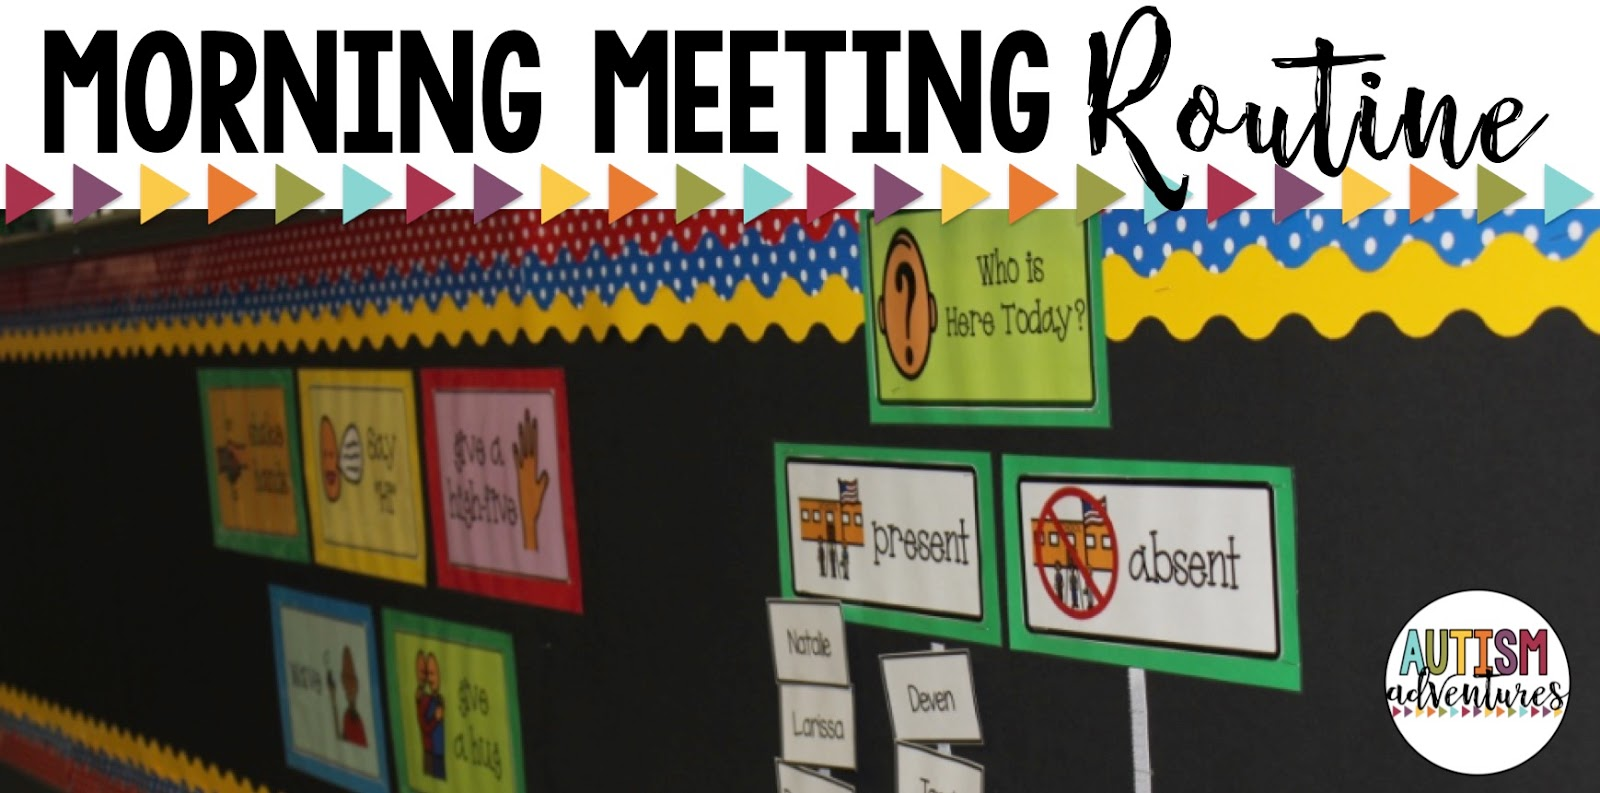 Morning Meeting Video The Autism Adventures Of Room 83